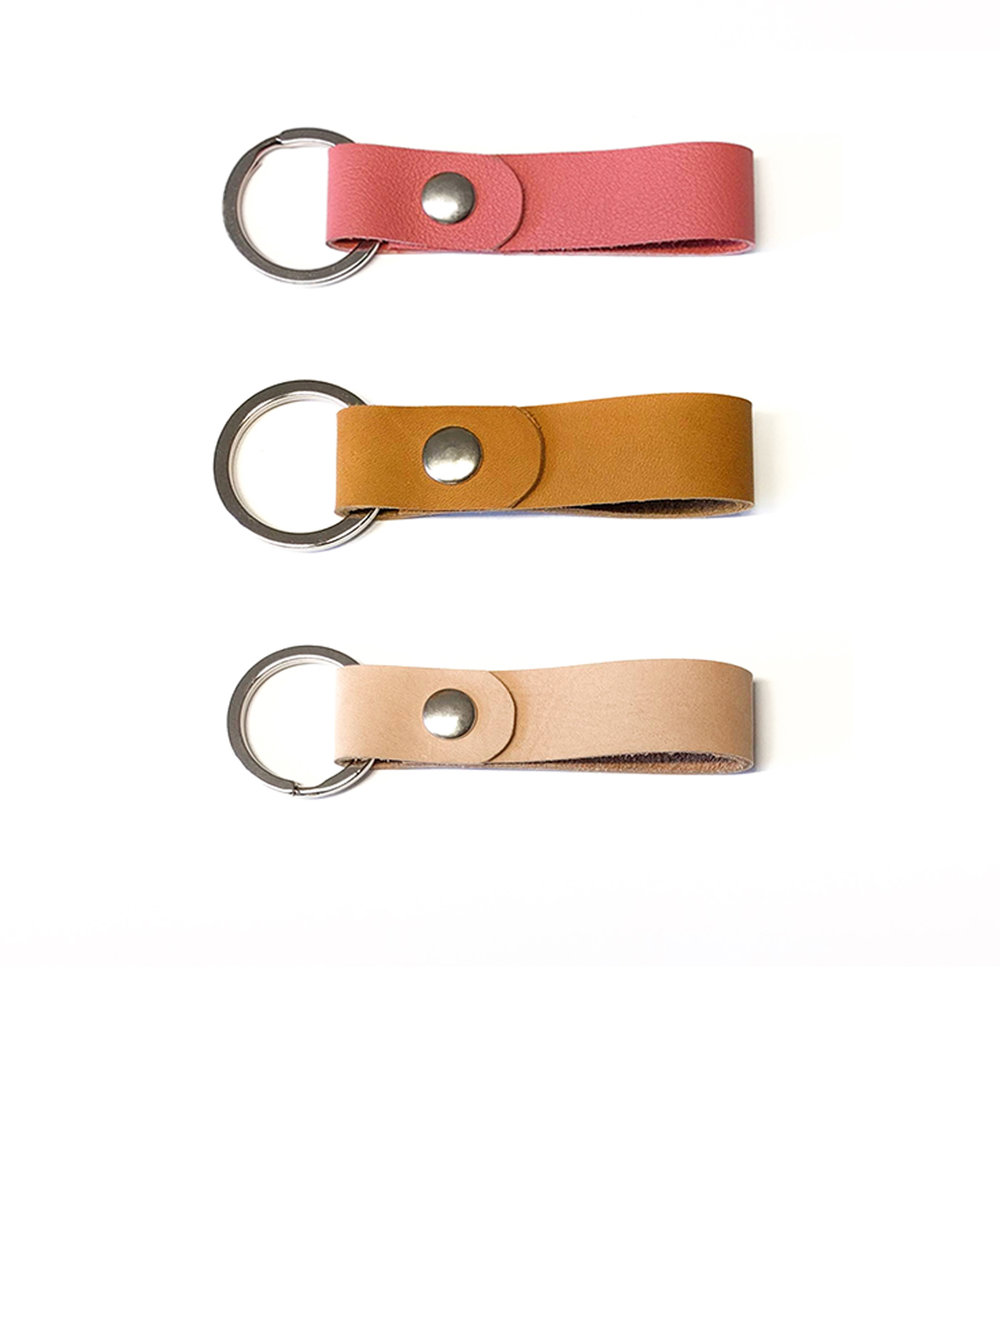 Leather keychains - more colors available10.00$